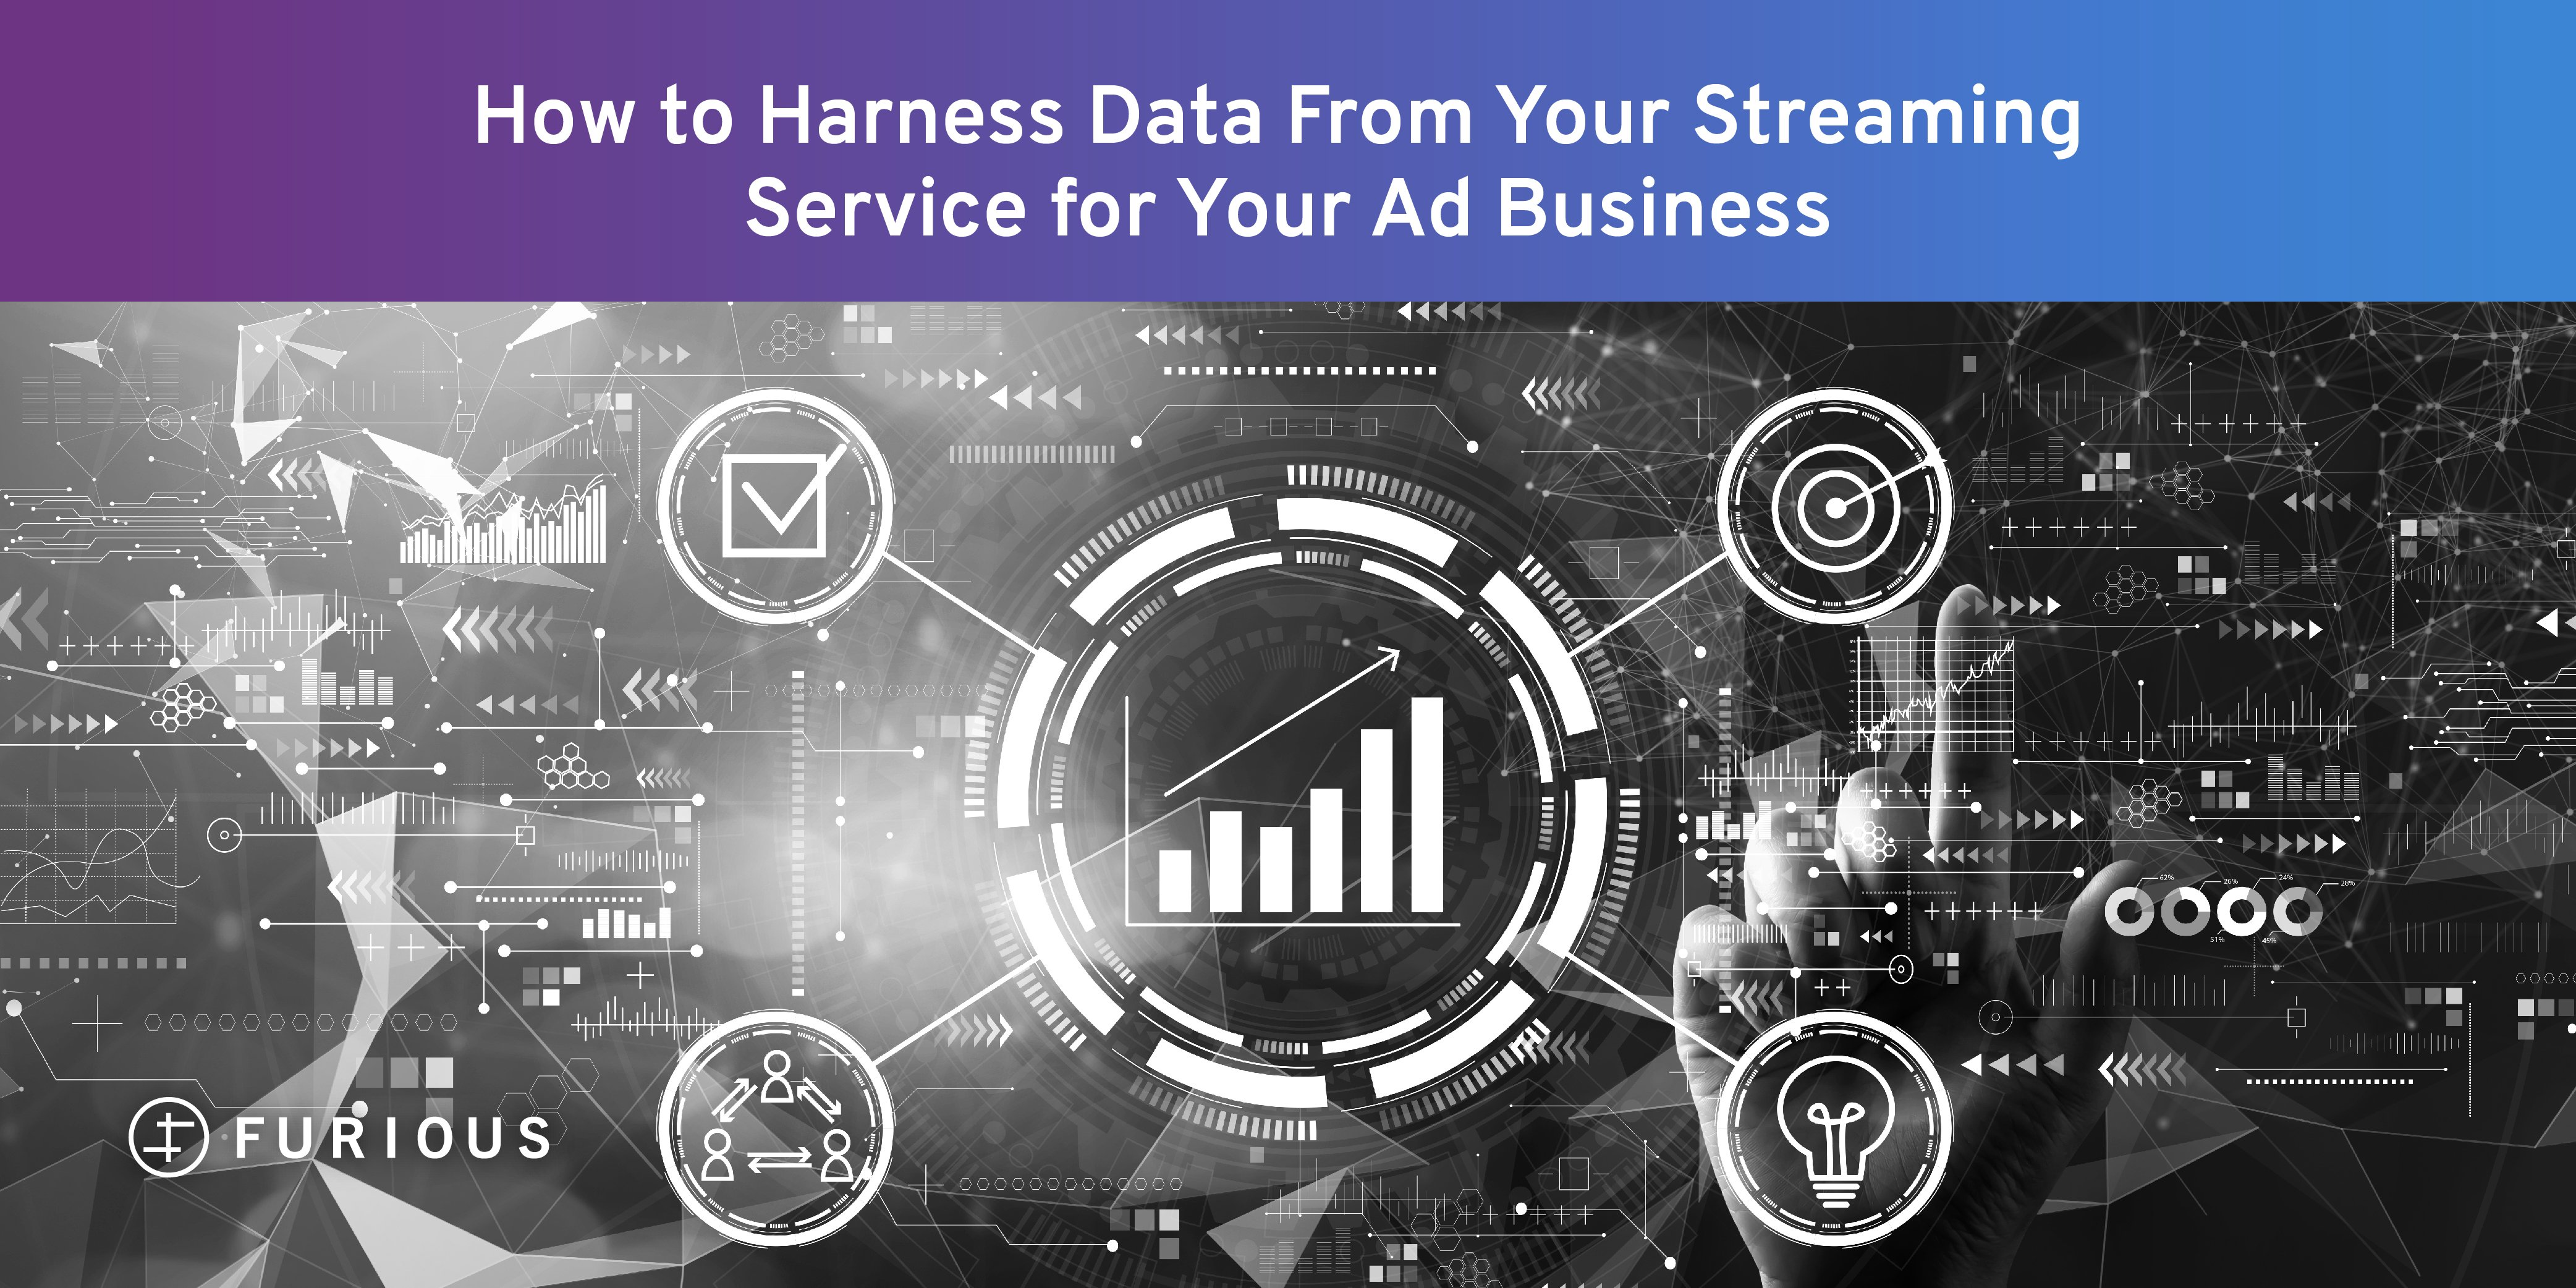 How to Harness Data From Your Streaming Service for Your Ad Business